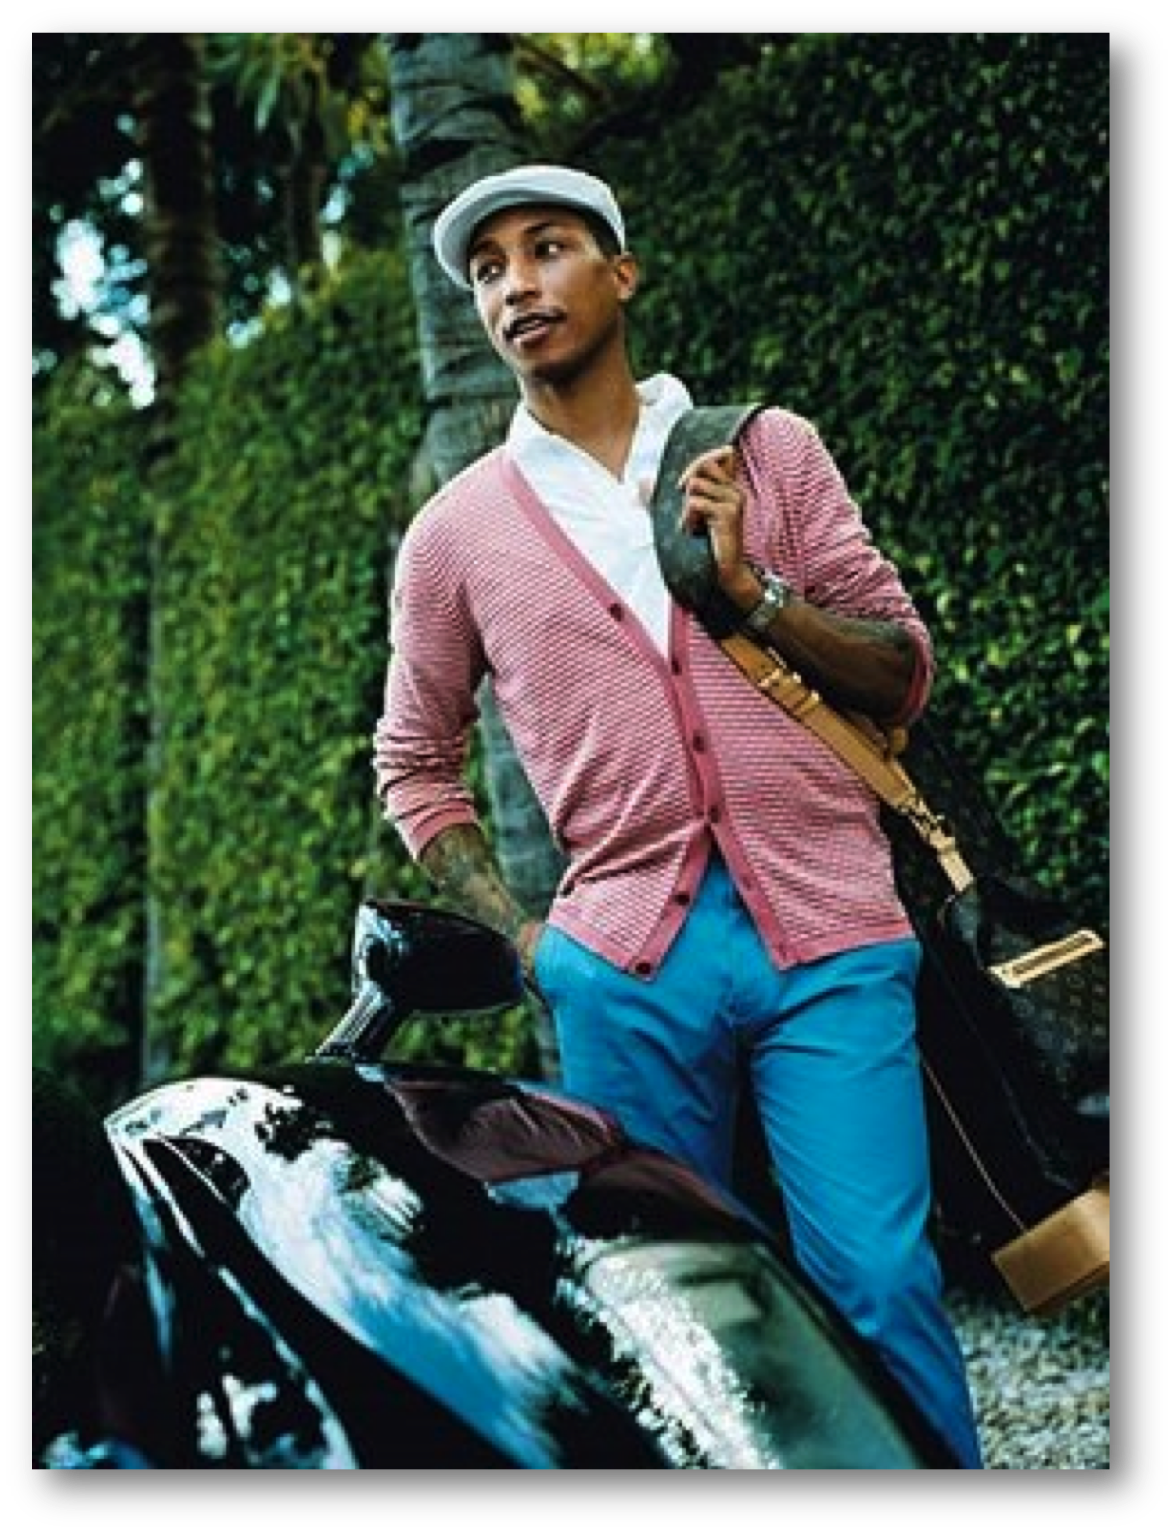 preppy-fashion-for-men_collegiate-fashion-trend-men_preppy-menswear_preppy-style-icons_old-school-preppy-trends_pharell-willams-fashion-style_pharell-williams-preppy